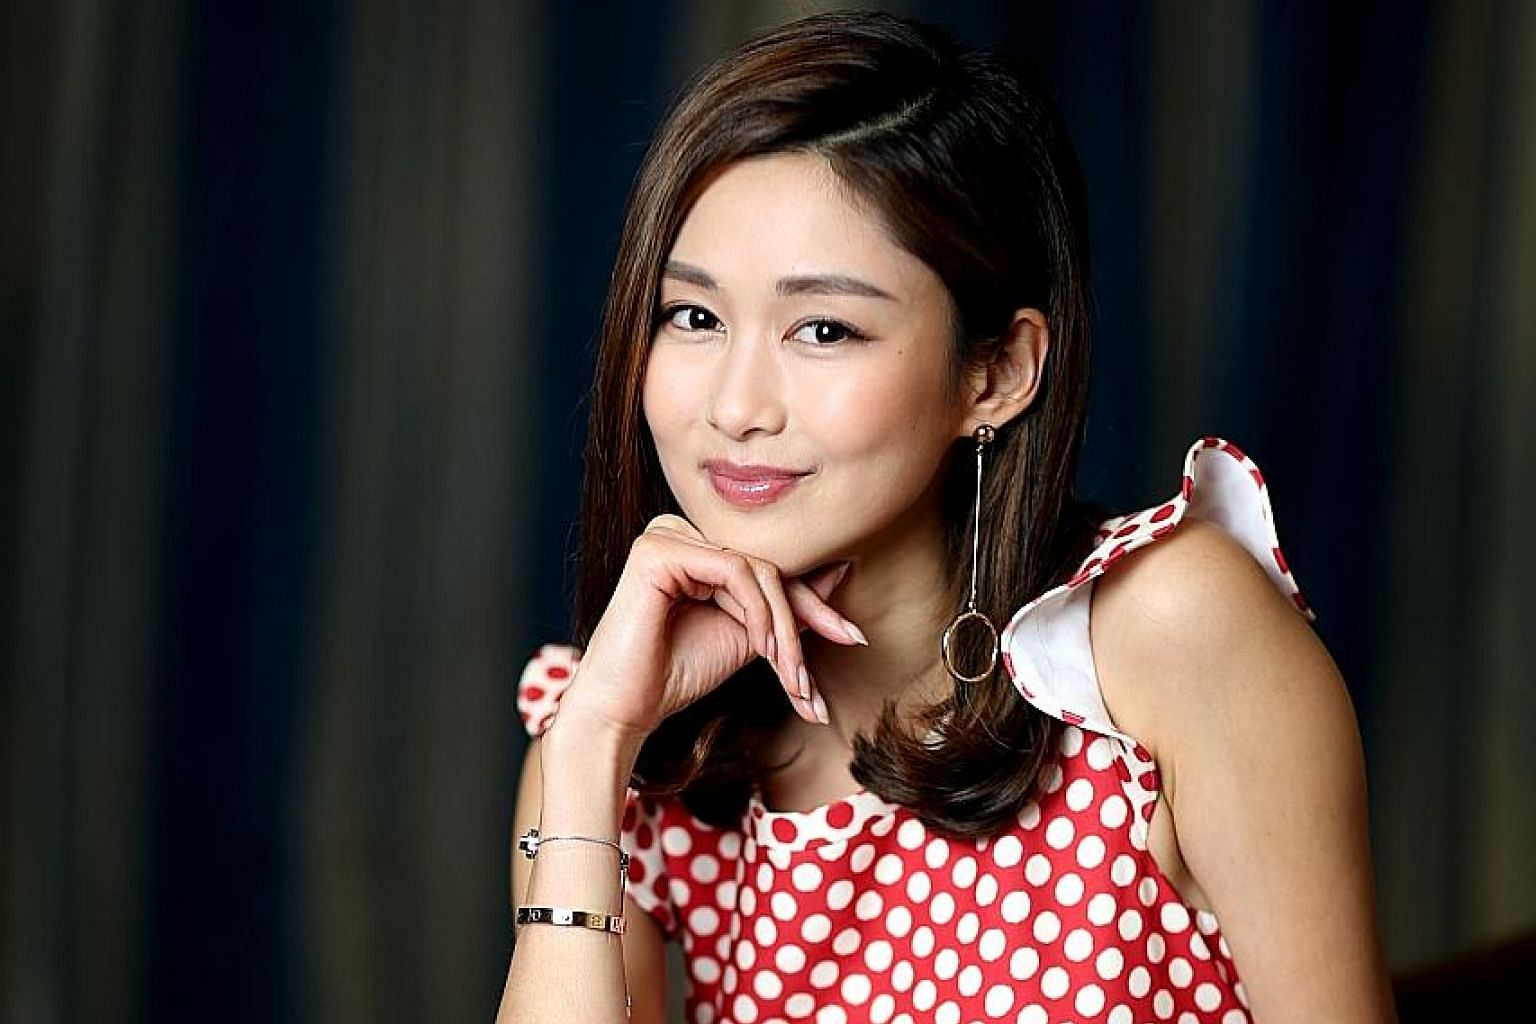 Actress Eliza Sam wants to be remembered for inspiring young girls to accept themselves for who they are.